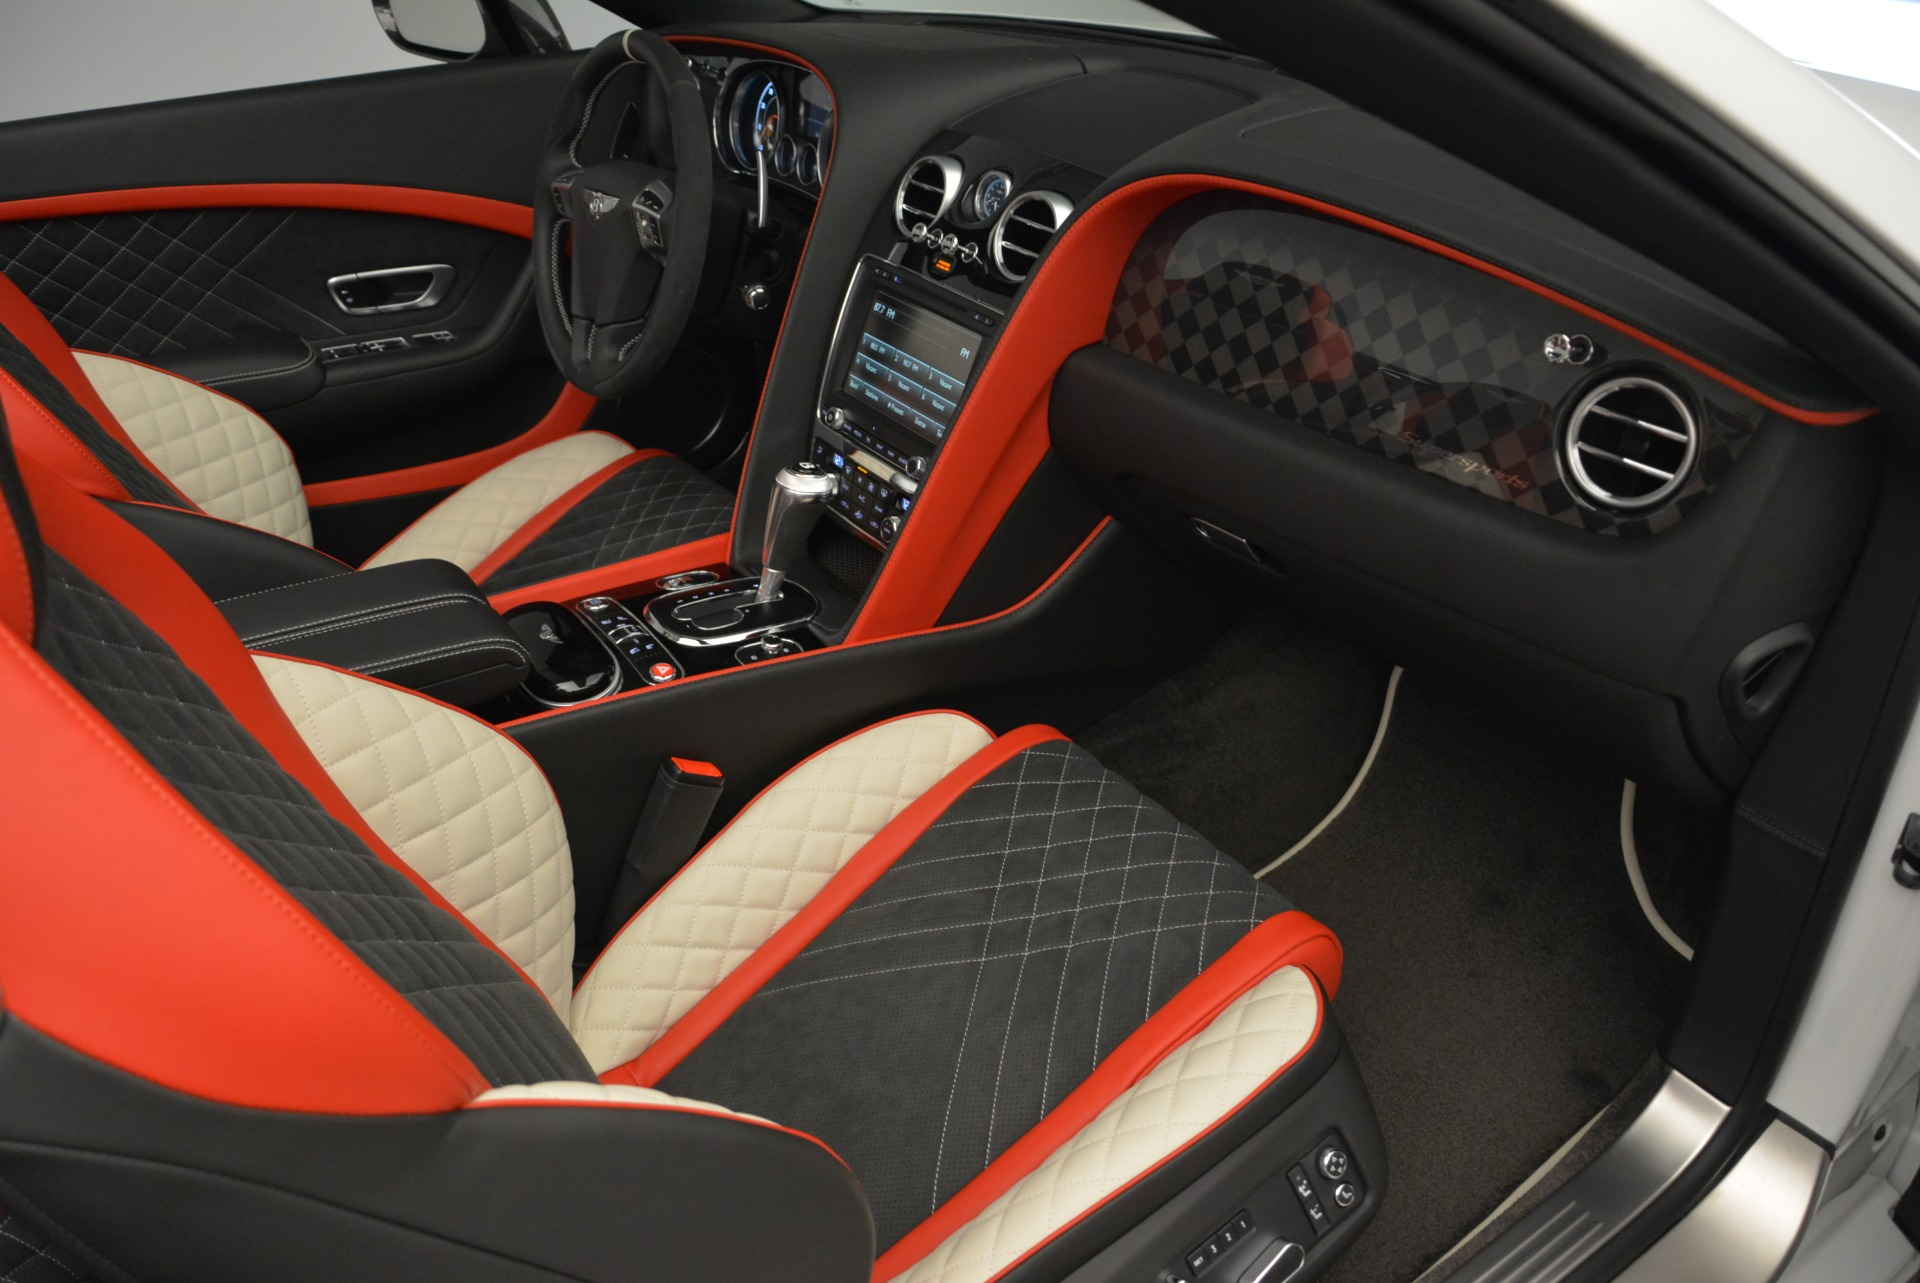 Used 2018 Bentley Continental GT Supersports Convertible For Sale In Greenwich, CT 1875_p29